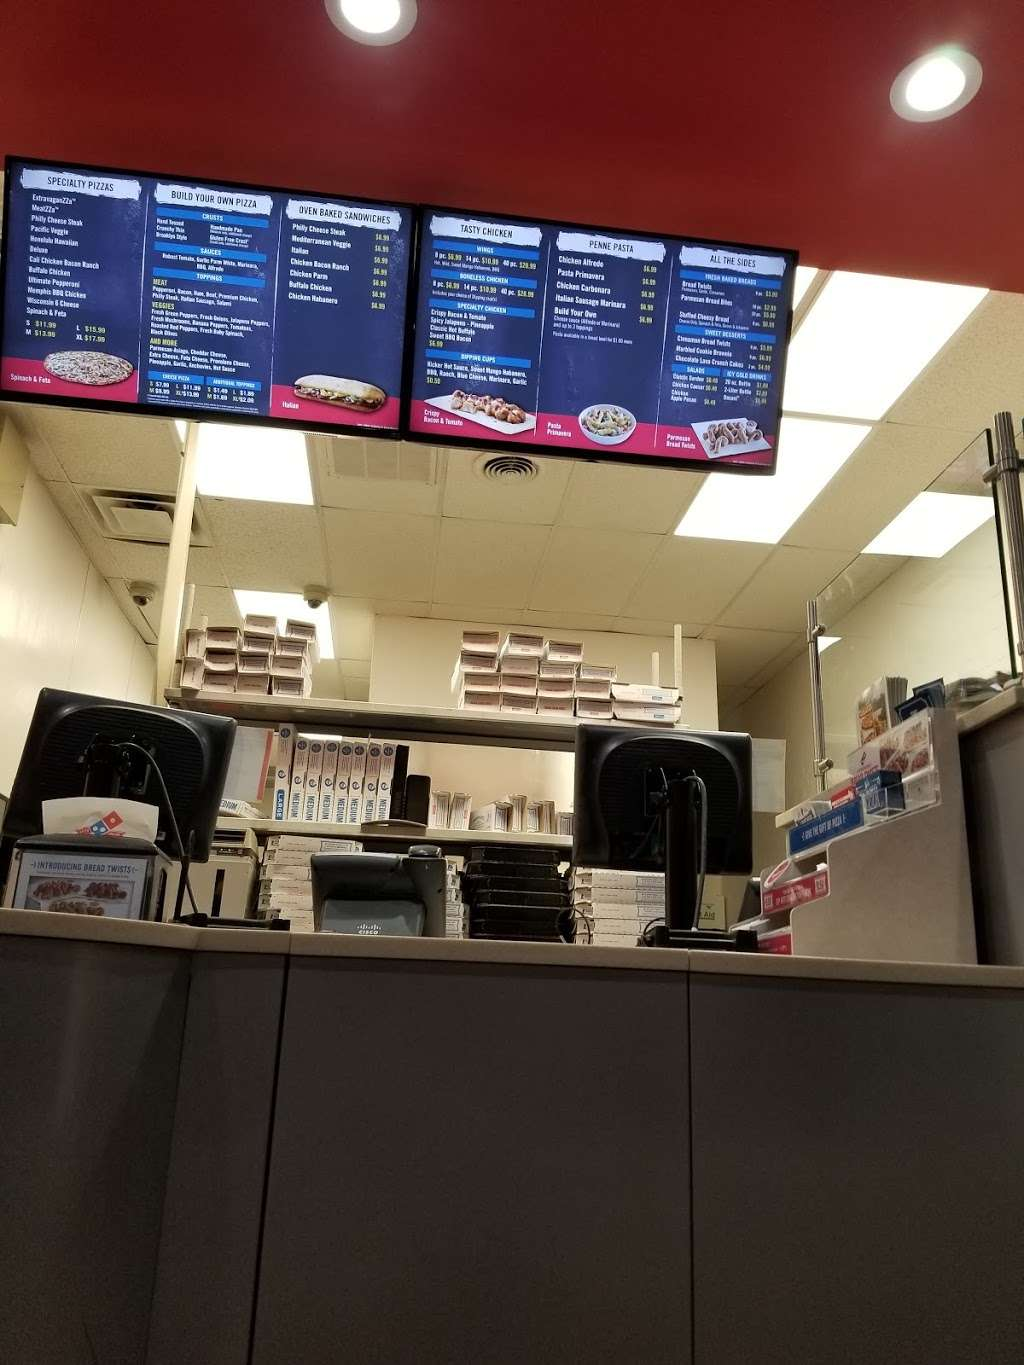 Dominos Pizza - meal delivery  | Photo 5 of 10 | Address: 538 Livingston St, Norwood, NJ 07648, USA | Phone: (201) 784-1111